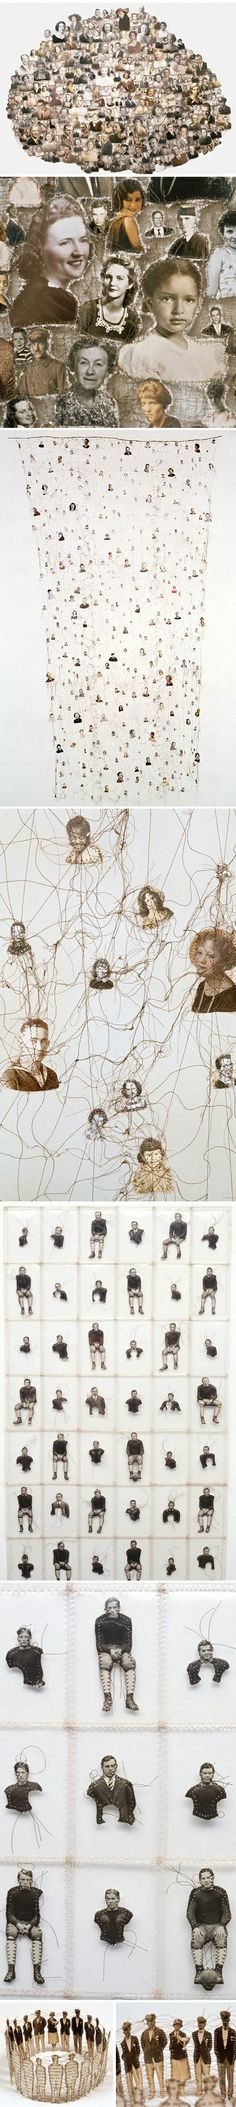 Lisa Kokin has used the idea of family trees and transformed this into an artistic form. I like the way the images are sewn together to connote the idea that familys will always be joined. It shows how a family grows and branches out into different directions.